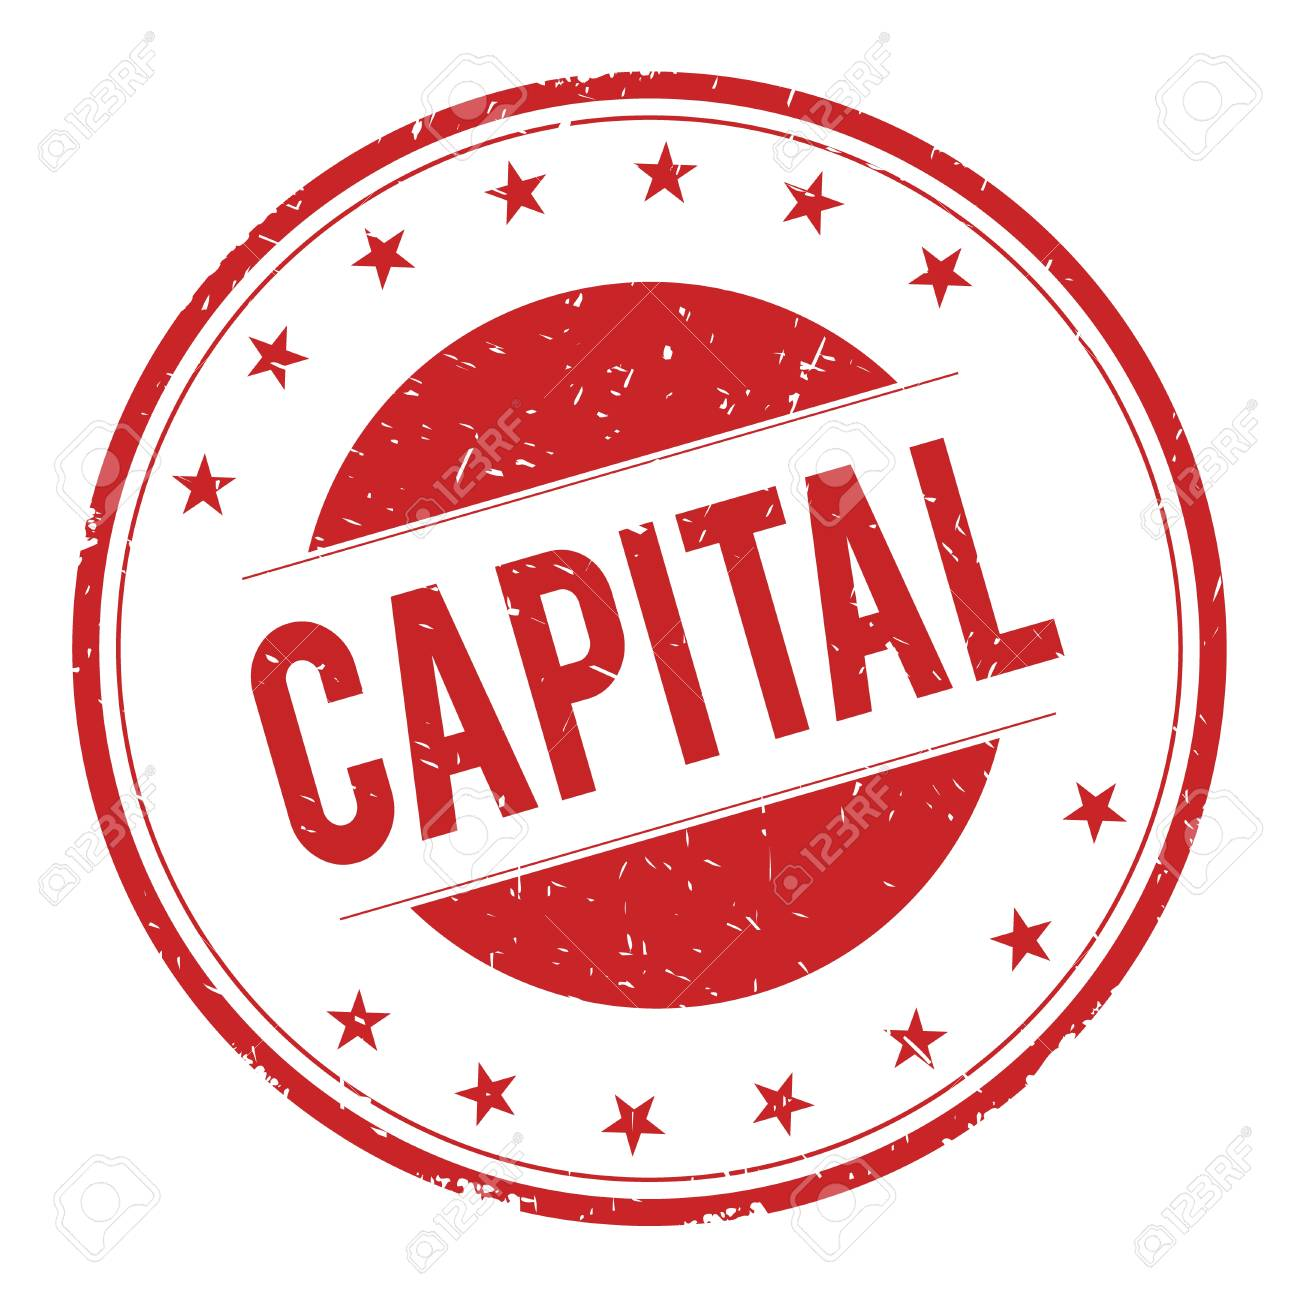 CAPITAL Stamp Sign Text Word Logo Red Stock Photo